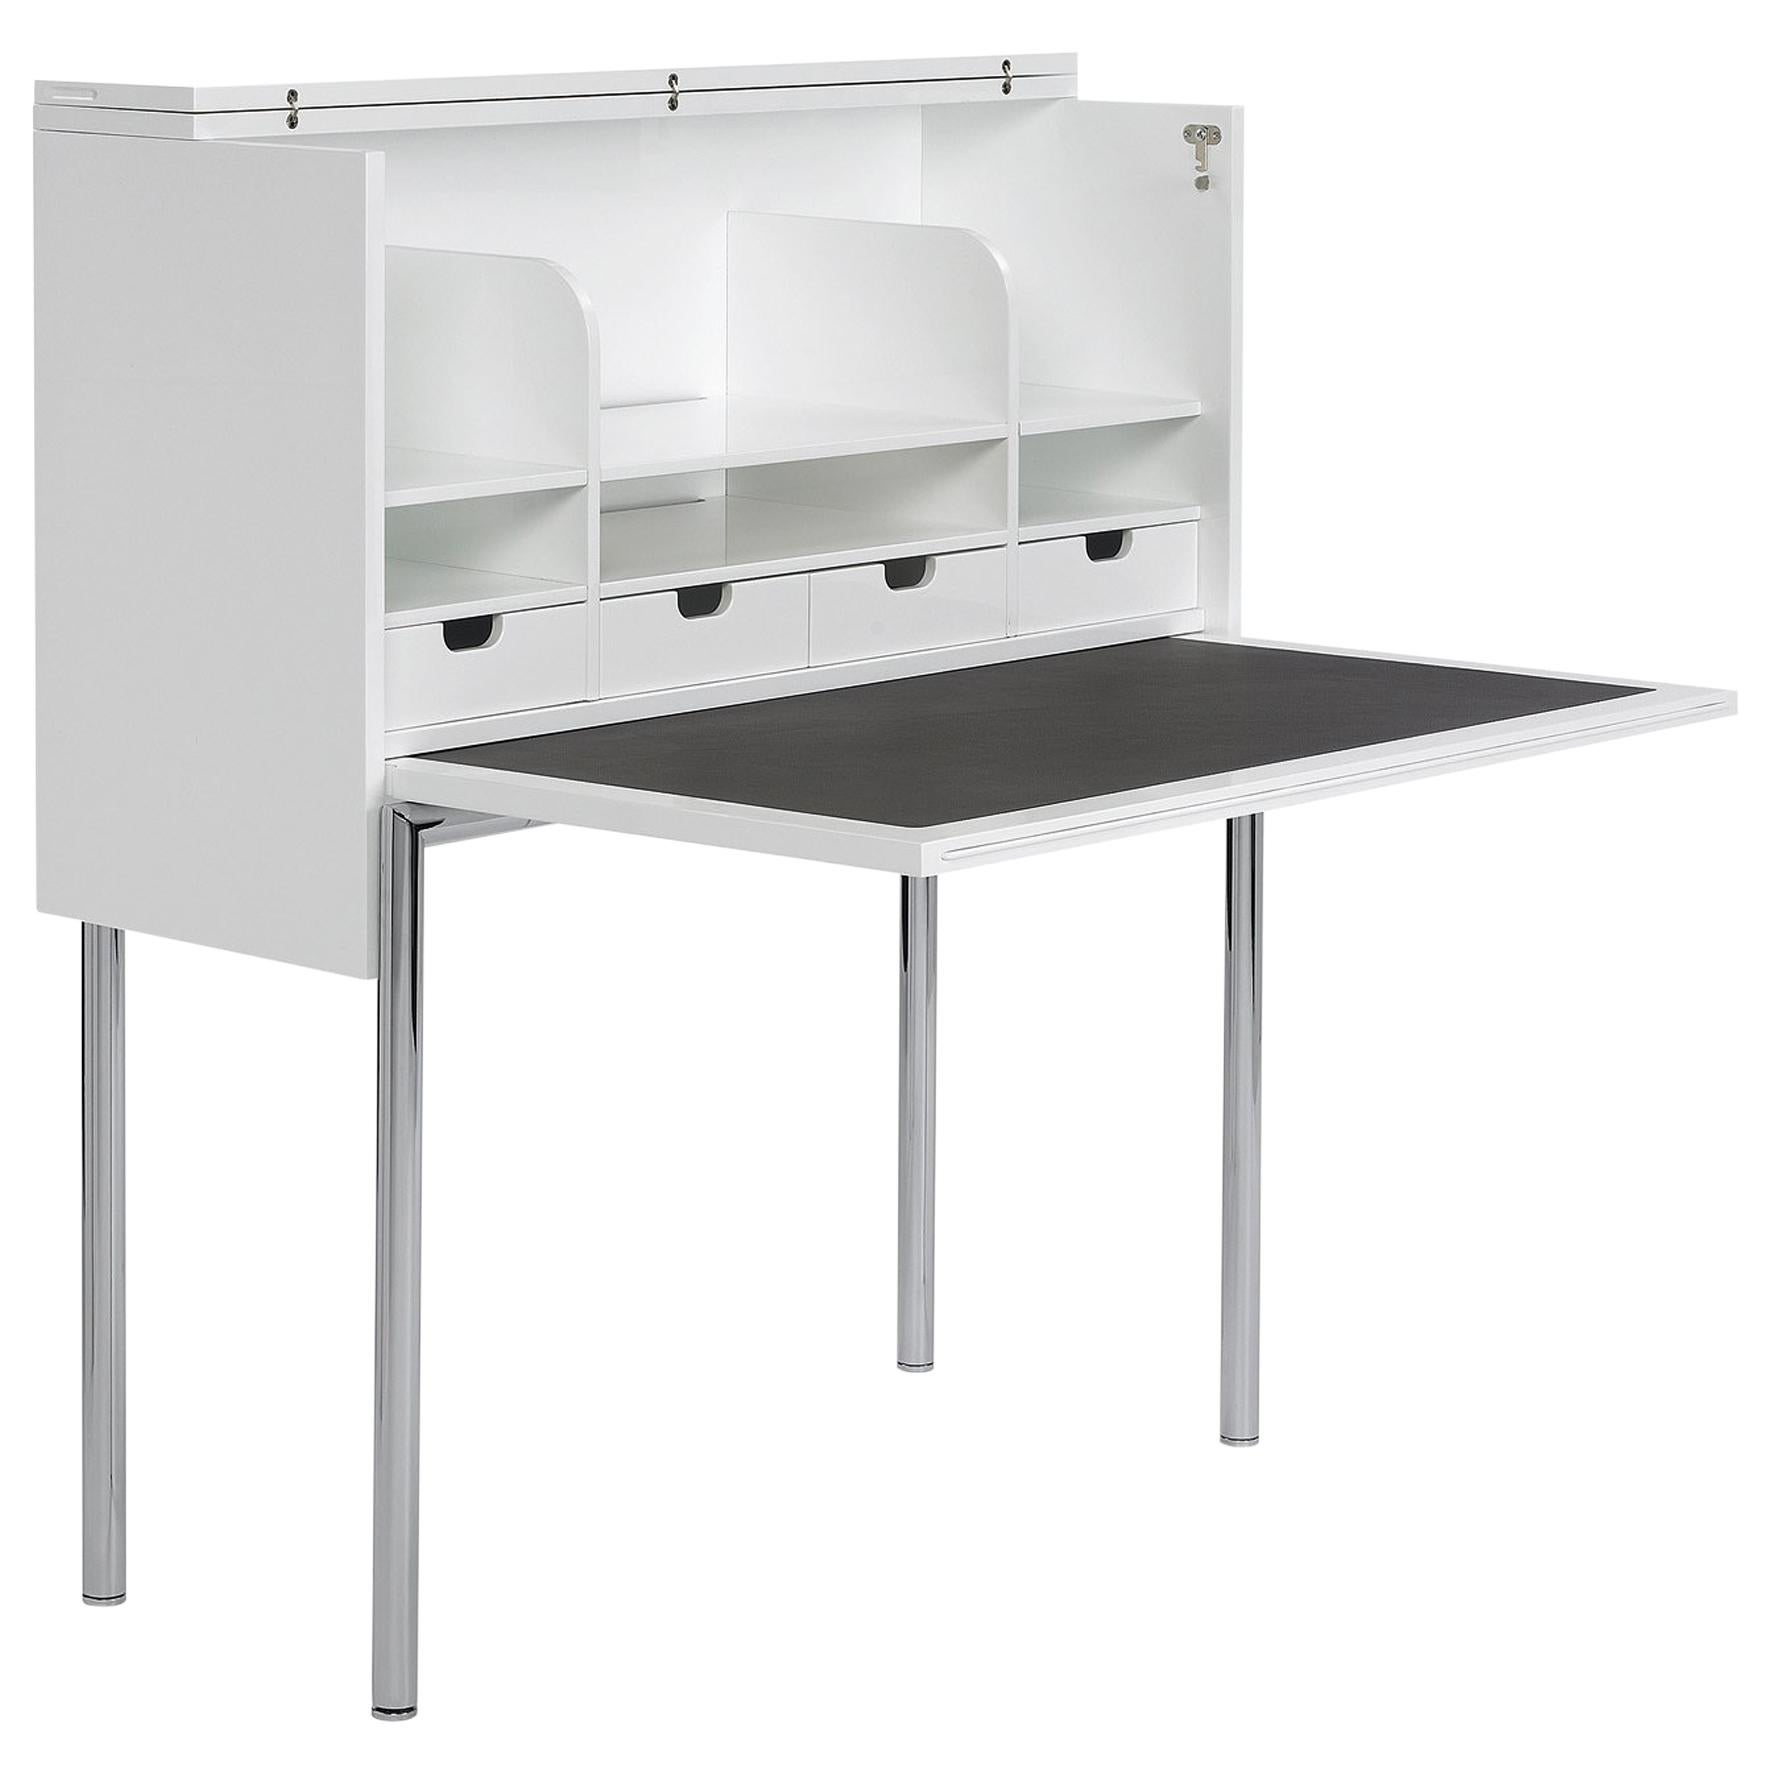 ClassiCon Orcus Desk in Lacquered White by Konstantin Grcic